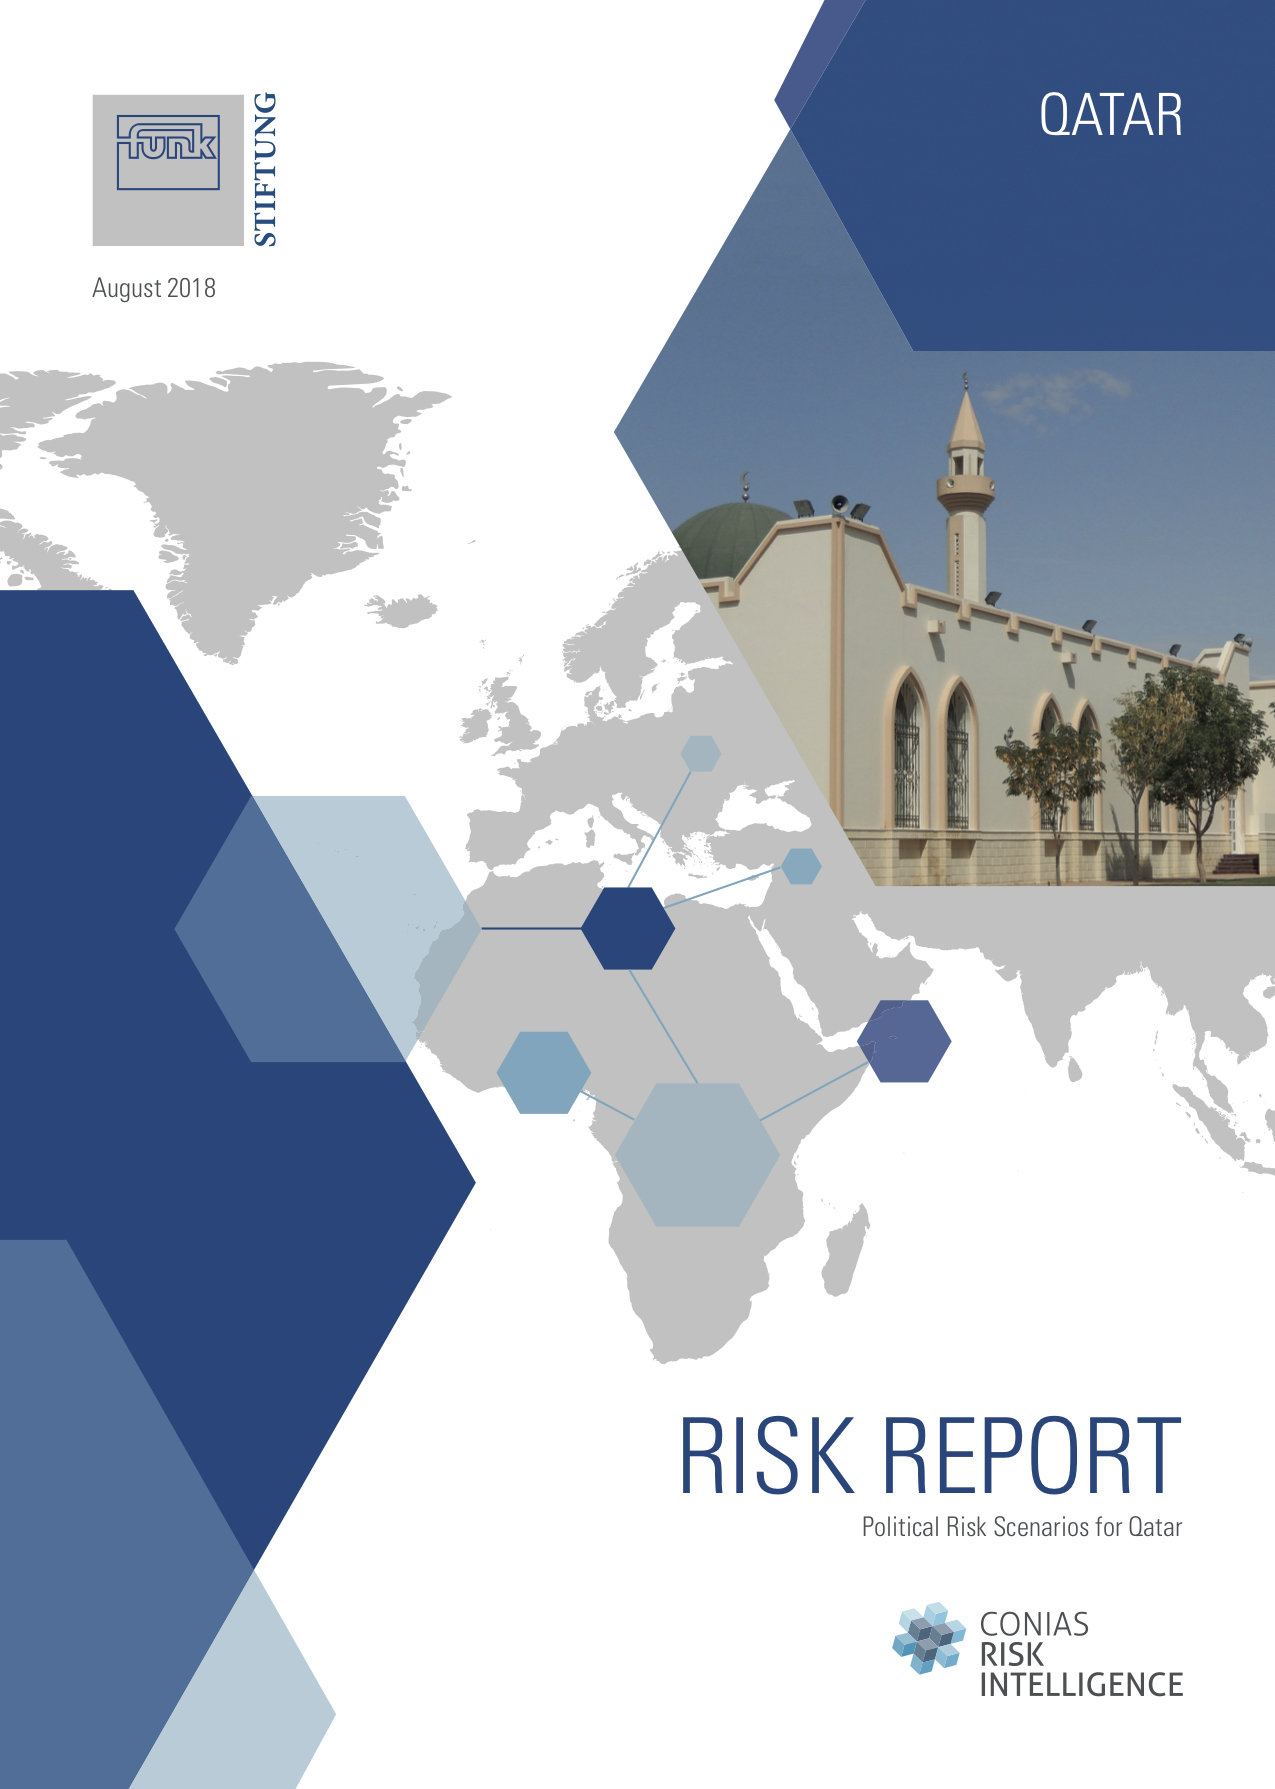 Risk Report Qatar